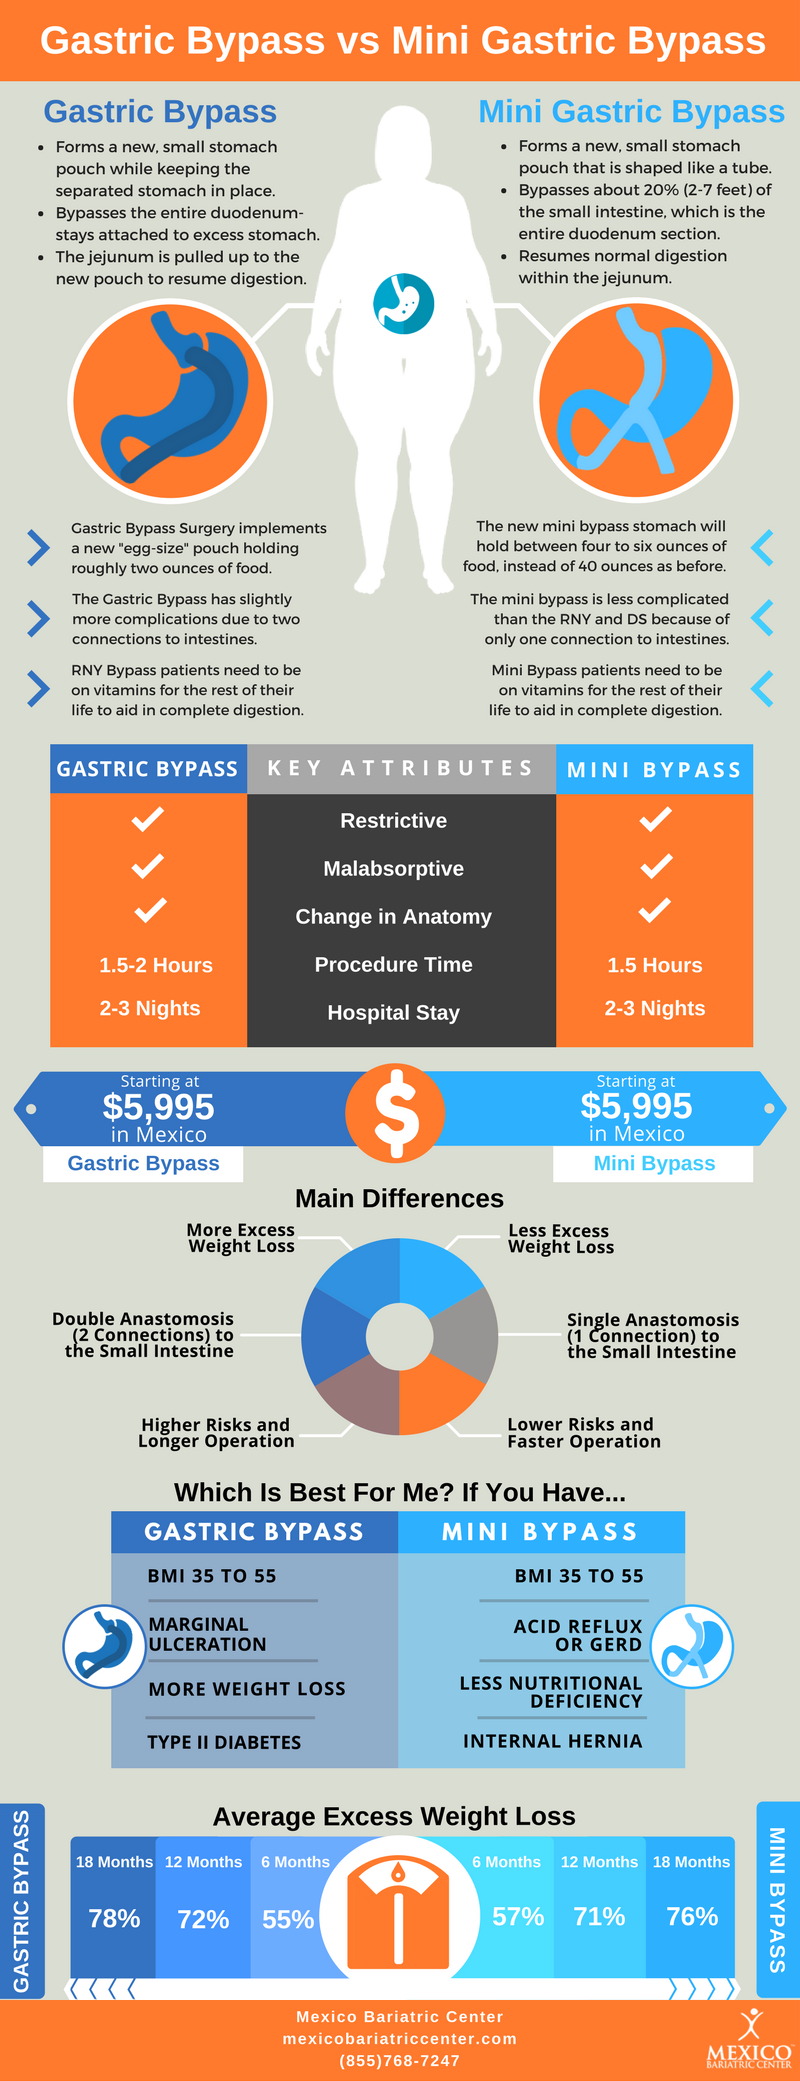 Gastric Bypass vs Mini Gastric Bypass Surgery Infographic